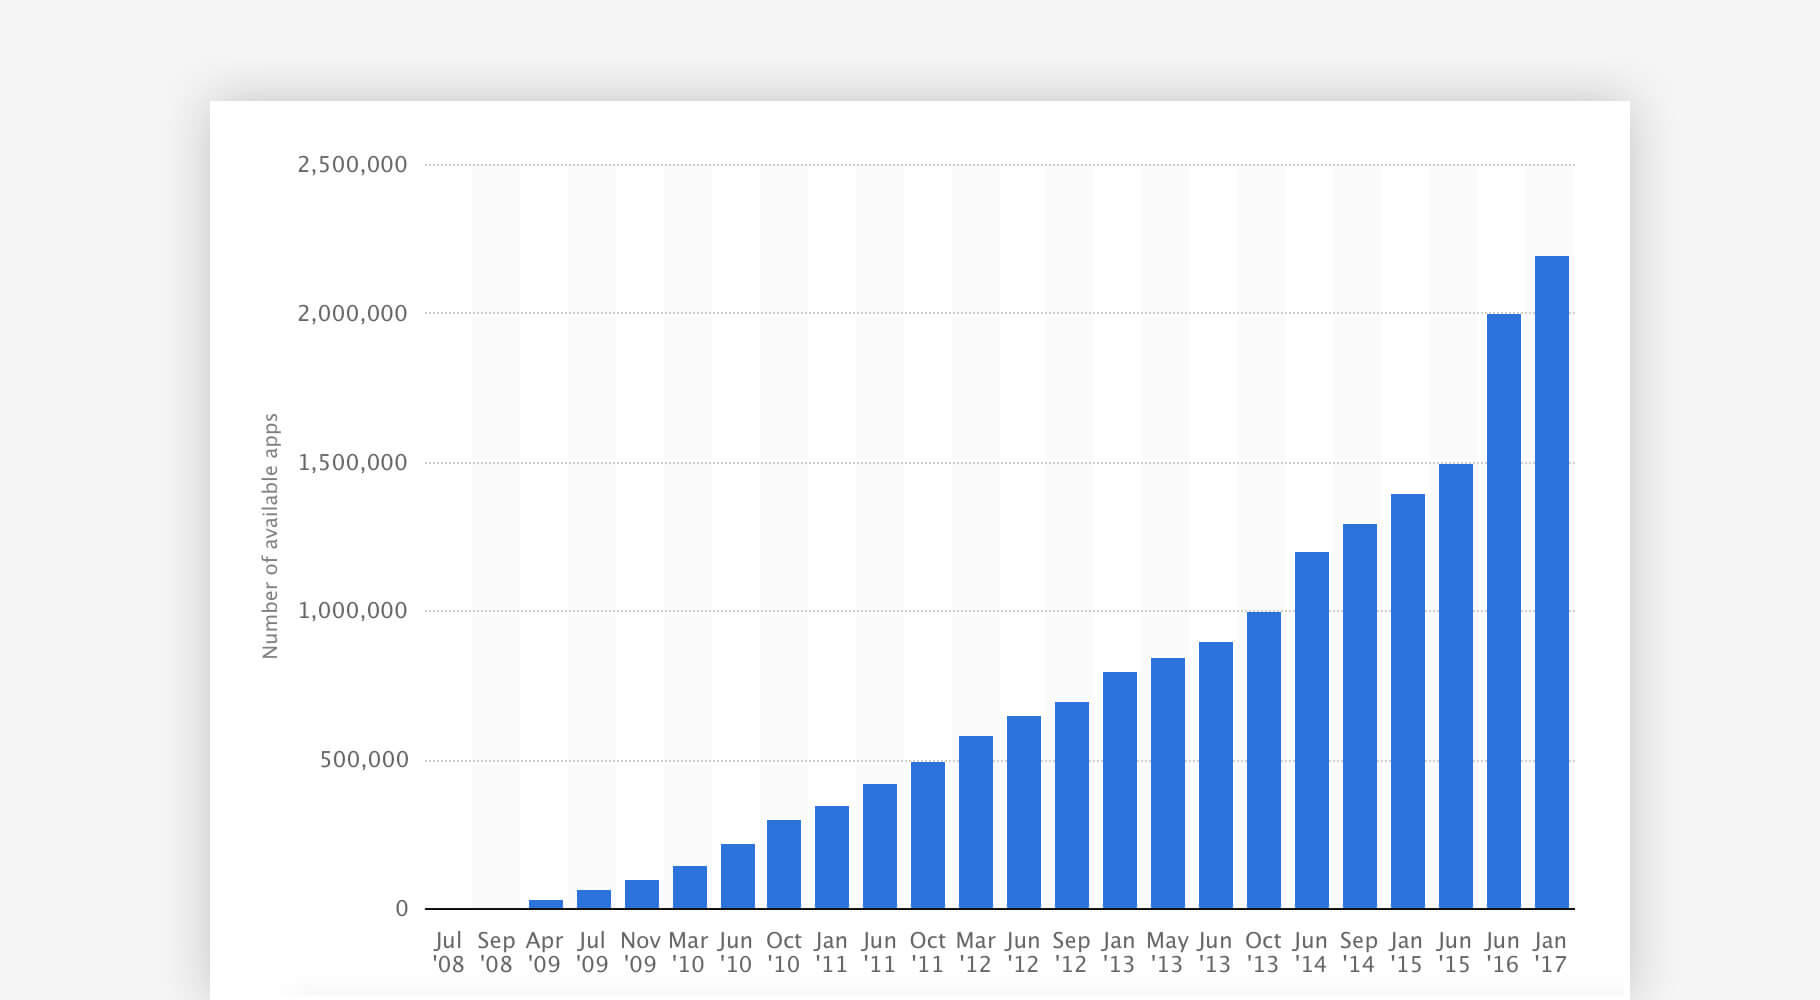 App Store analytics: number of available apps from July 2008 to January 2017